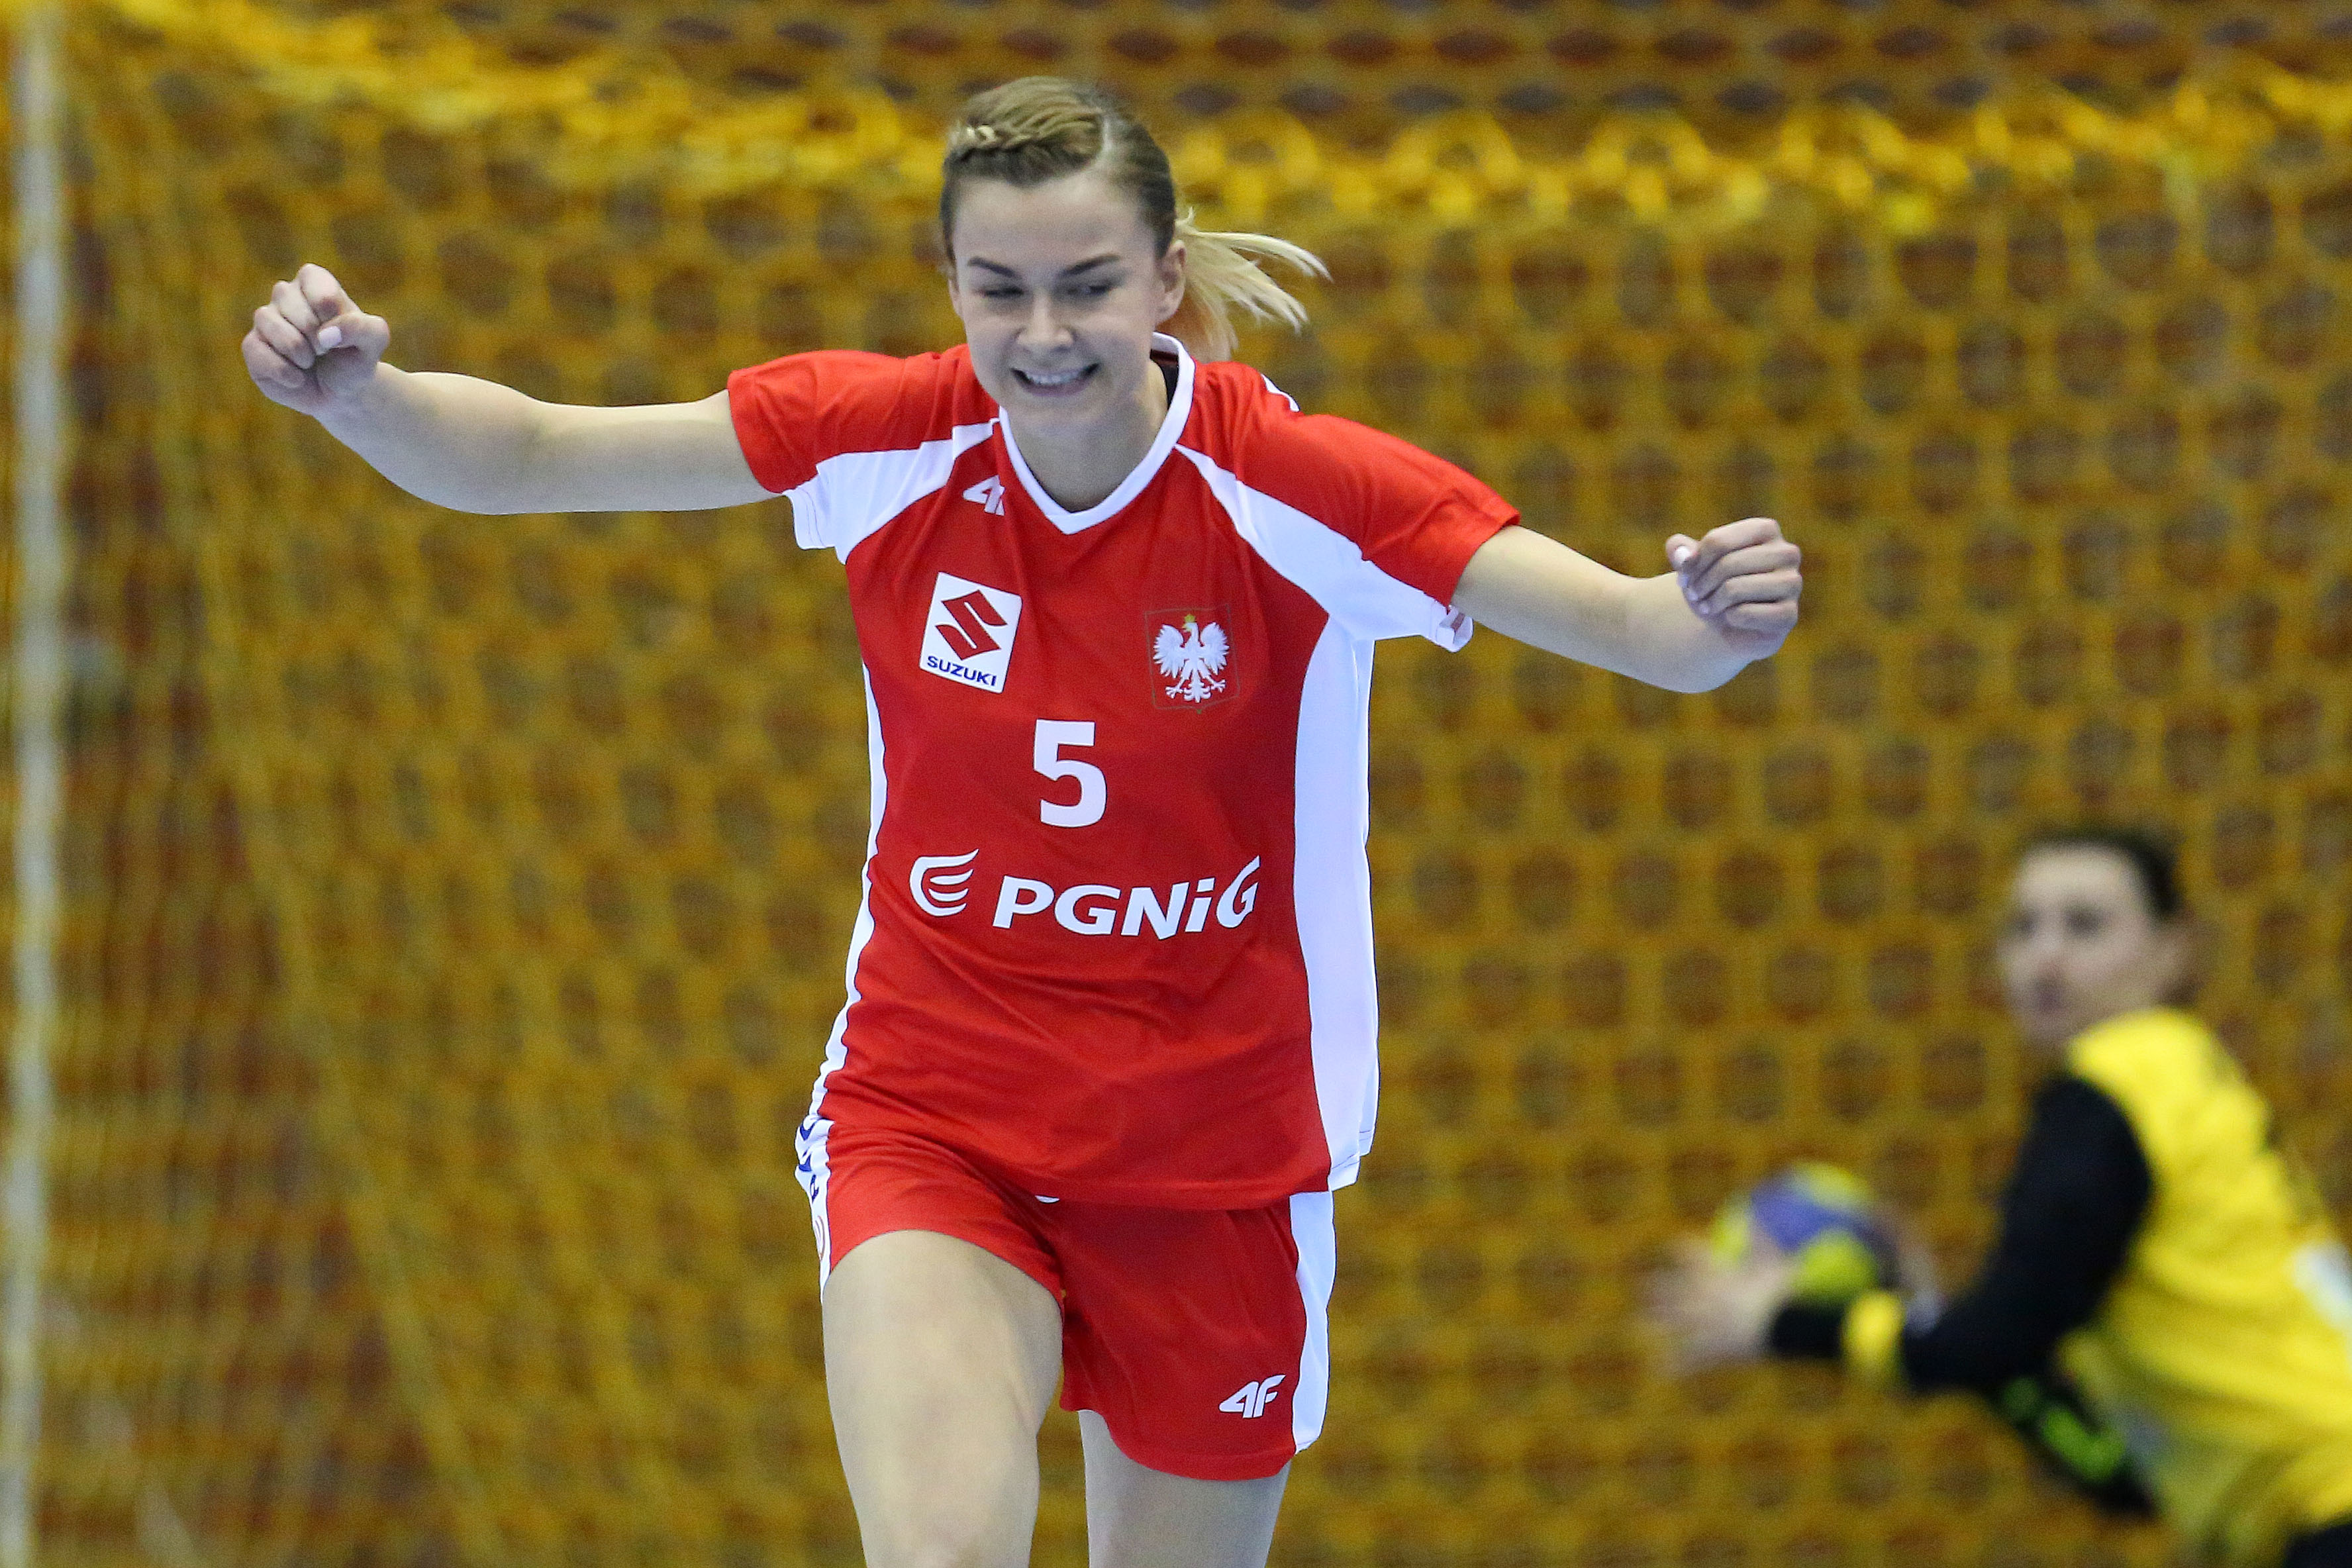 2017.03.17 Gdansk Pilka Reczna Kobiet Turniej Miedzynarodowy  Mecz Polska - Bialorus N/z Monika Michalow Foto Piotr Matusewicz / PressFocus 2017.03.17 Gdansk Women handball International Tournament Poland - Belarus Monika Michalow Credit: Piotr Matusewicz / PressFocus